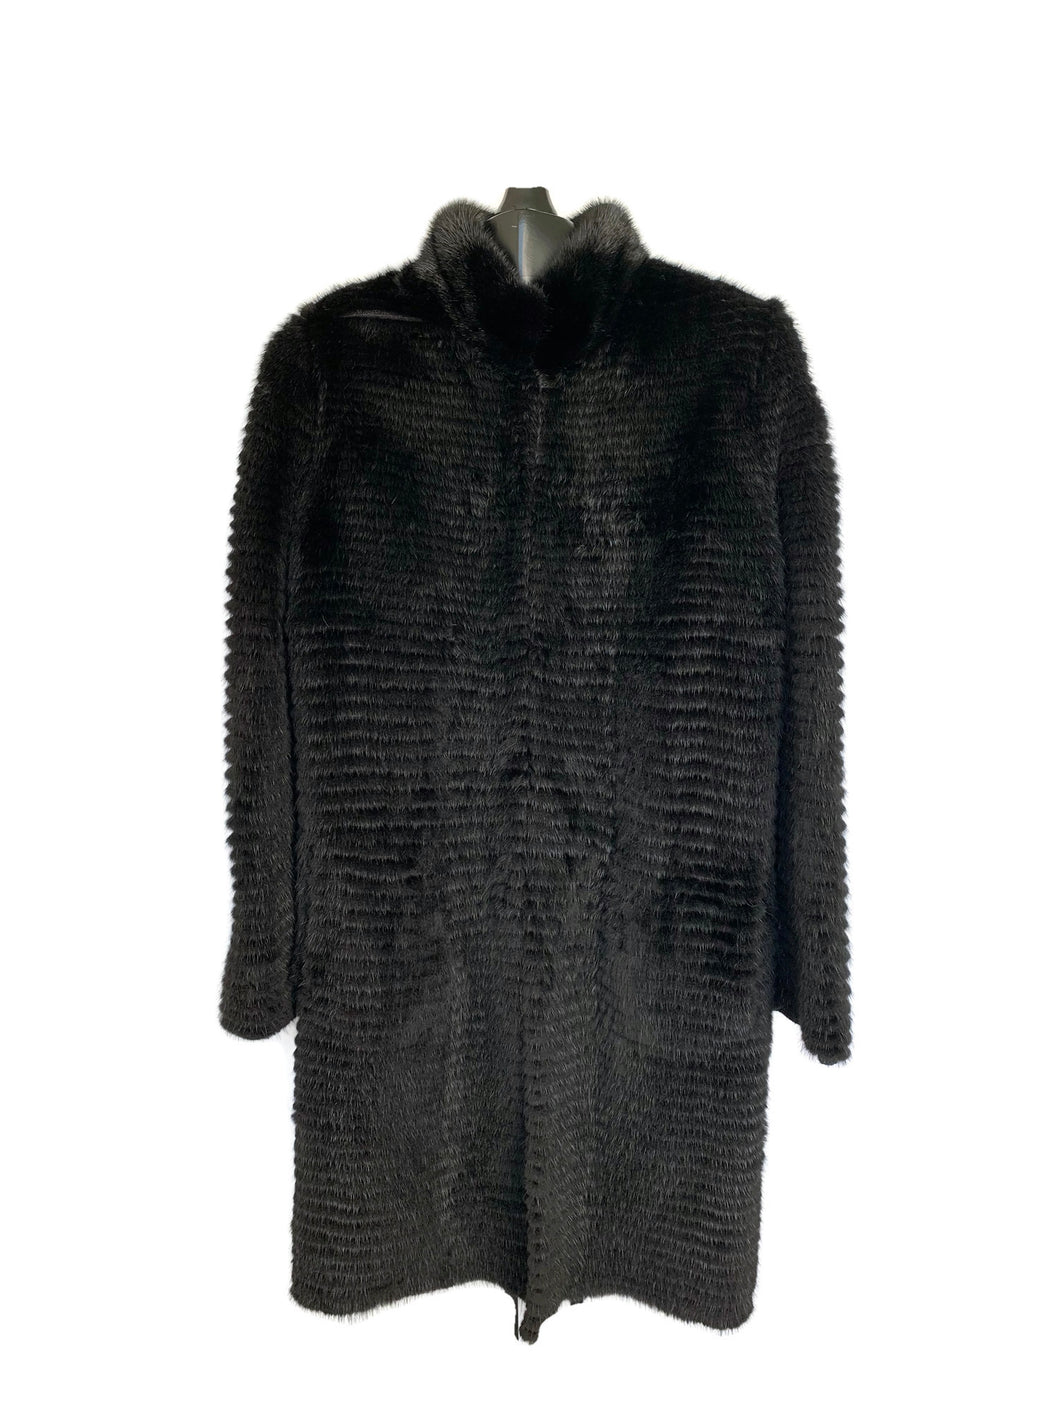 Black Dyed Feathered Mink Jacket Reversible Cashmere Knit